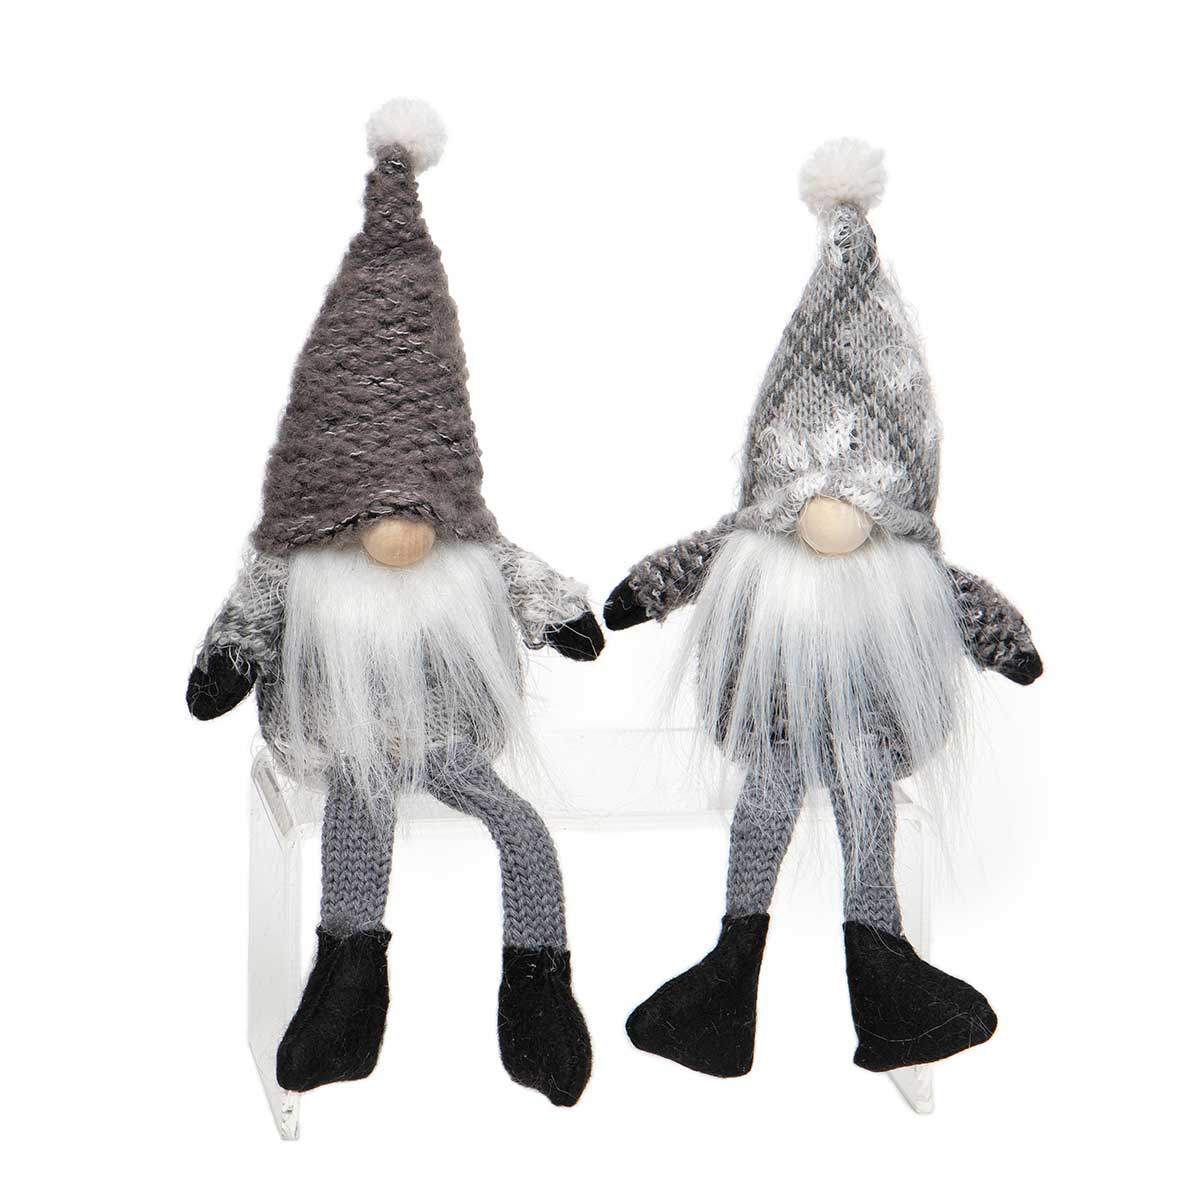 GREY GNOME WITH SNOWFLAKES, WOOD NOSE,